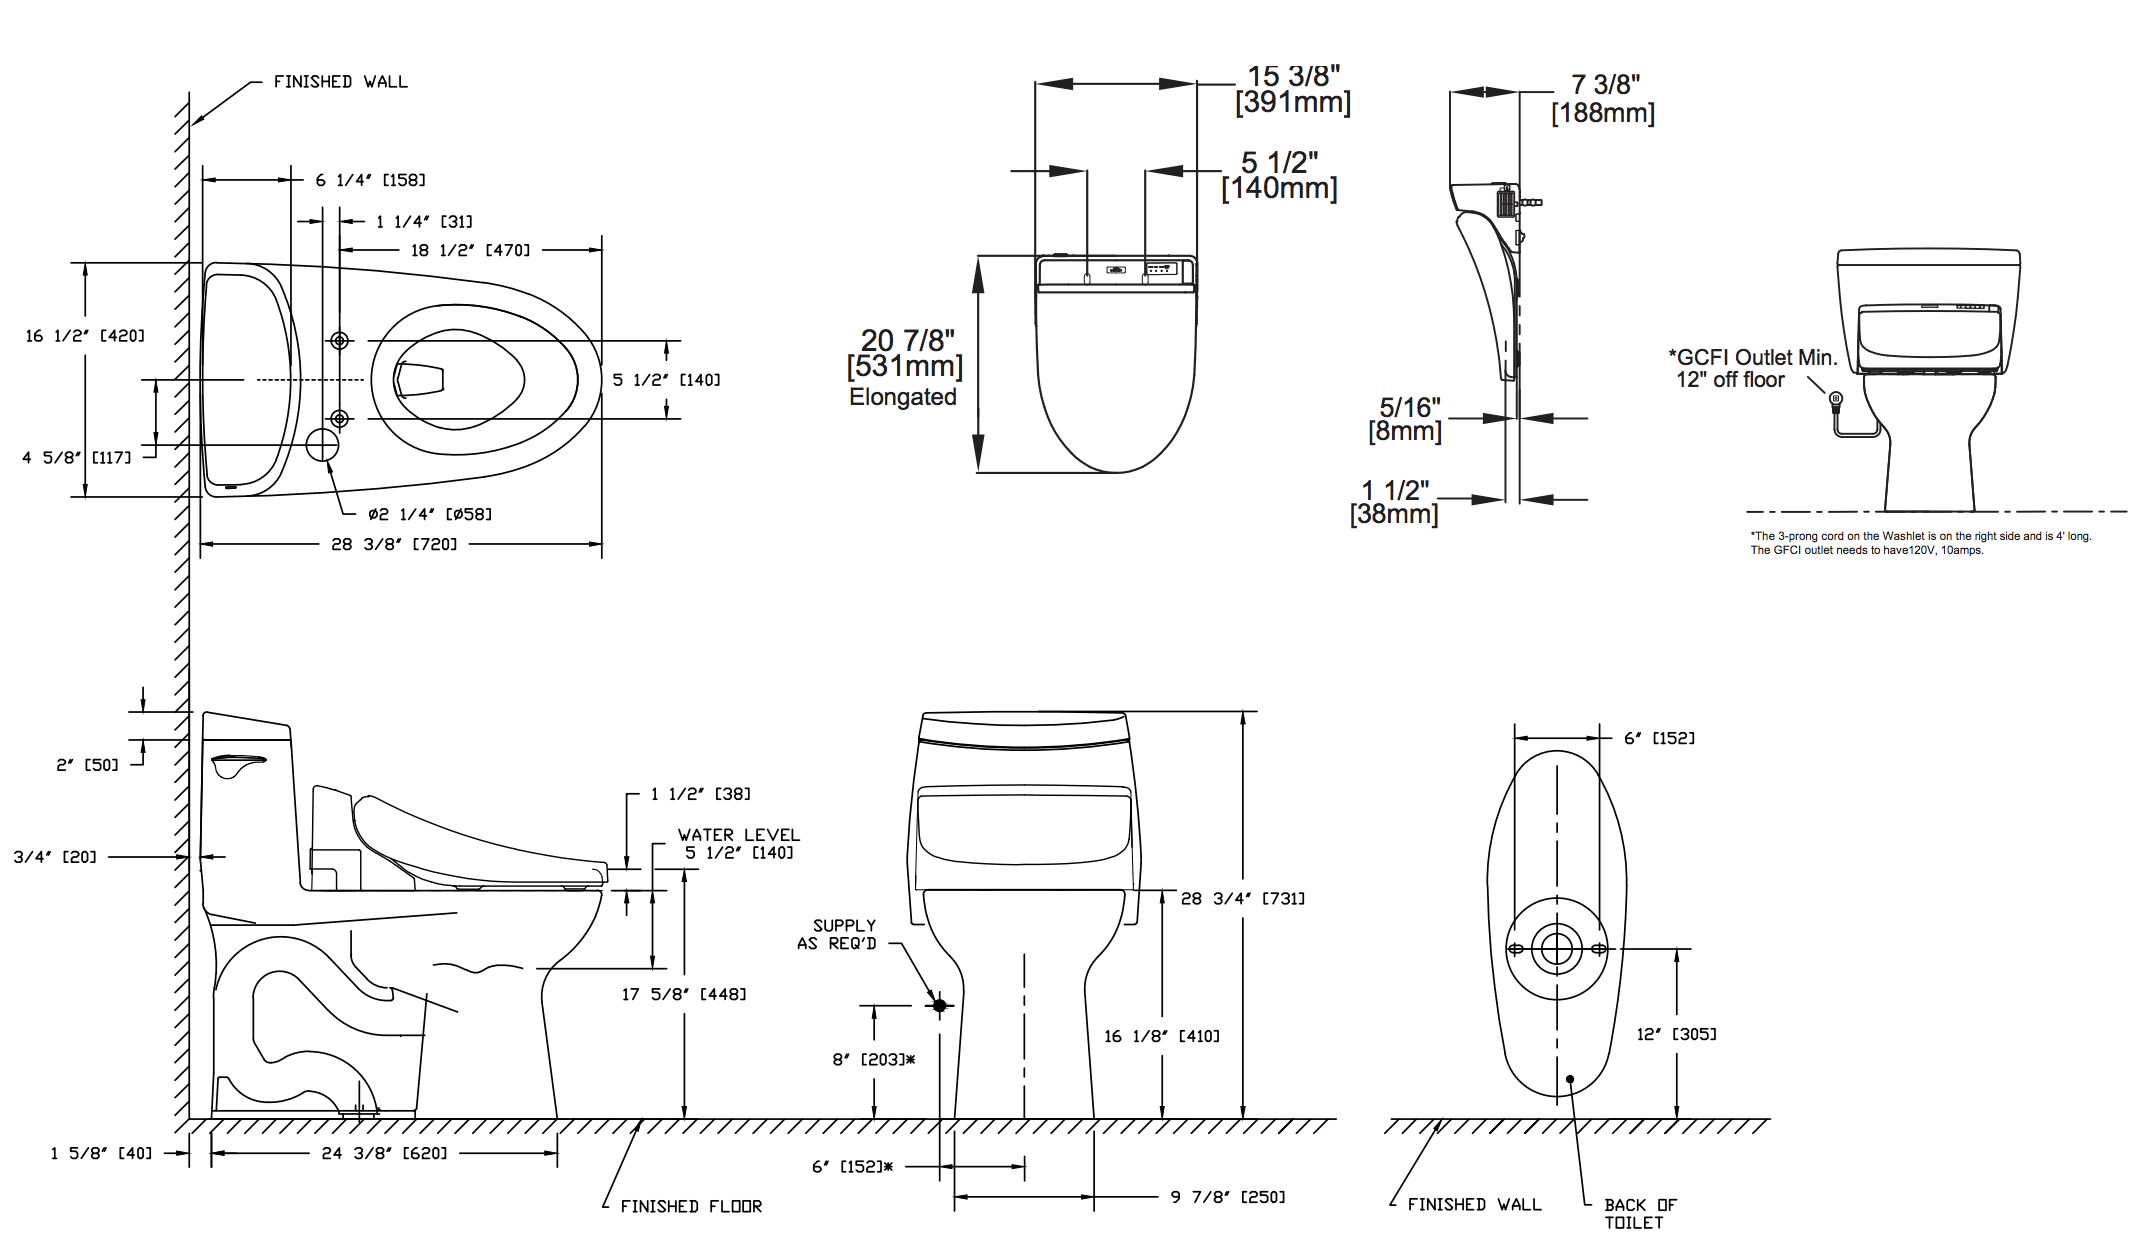 toto-ultramax-ii-1g-washlet-c200-one-piece-toilet-and-bidet-system-1.0-gpf-diagram.png